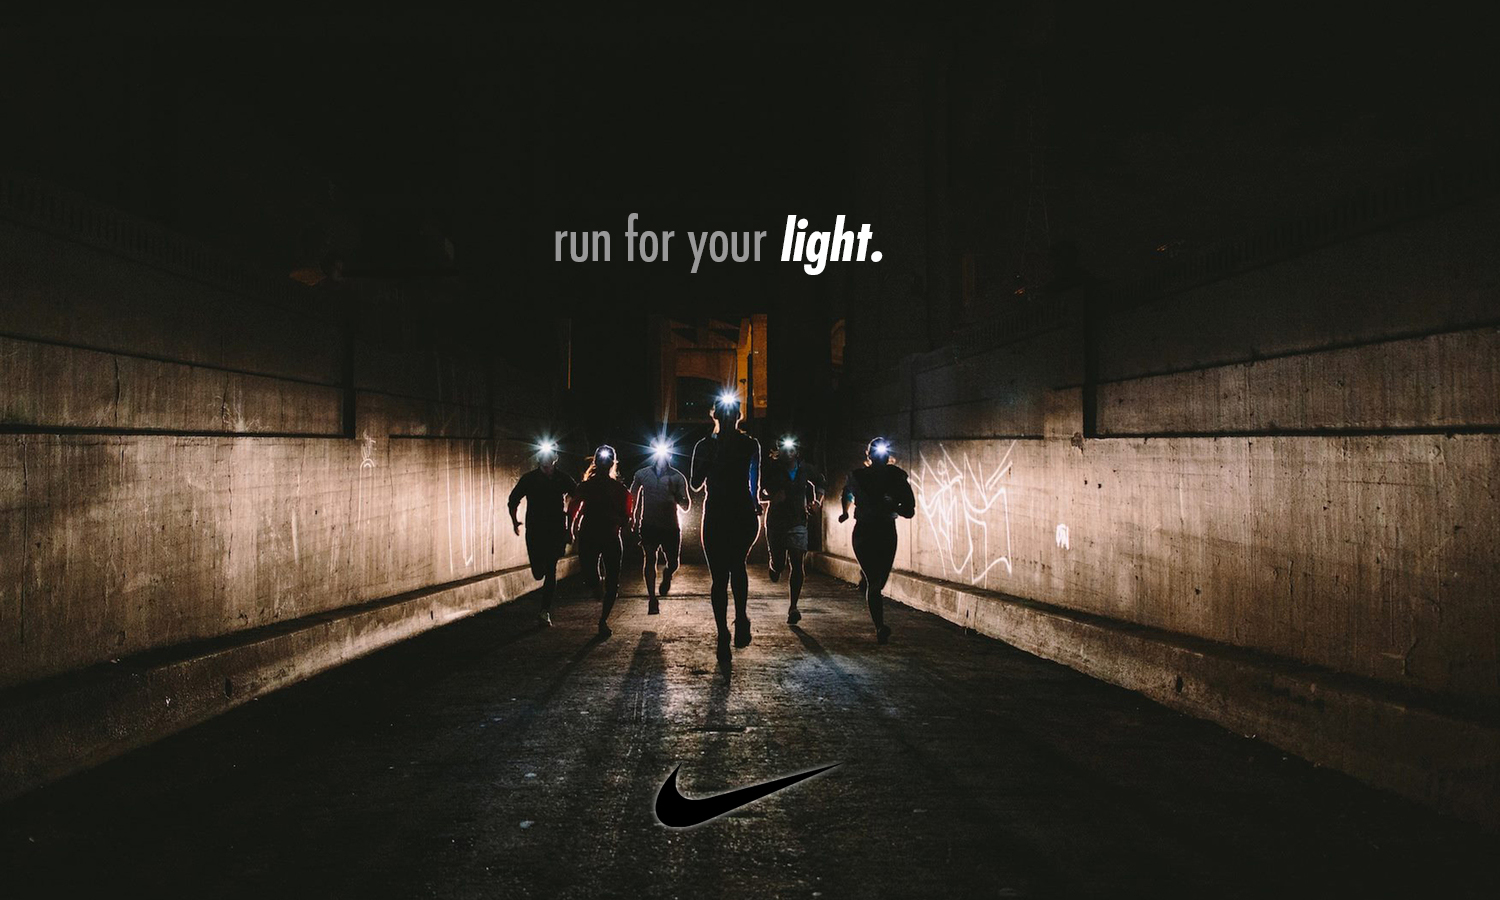 mel blanchard gong ad  Nike_Campaign_Runners_Tunnel.jpg